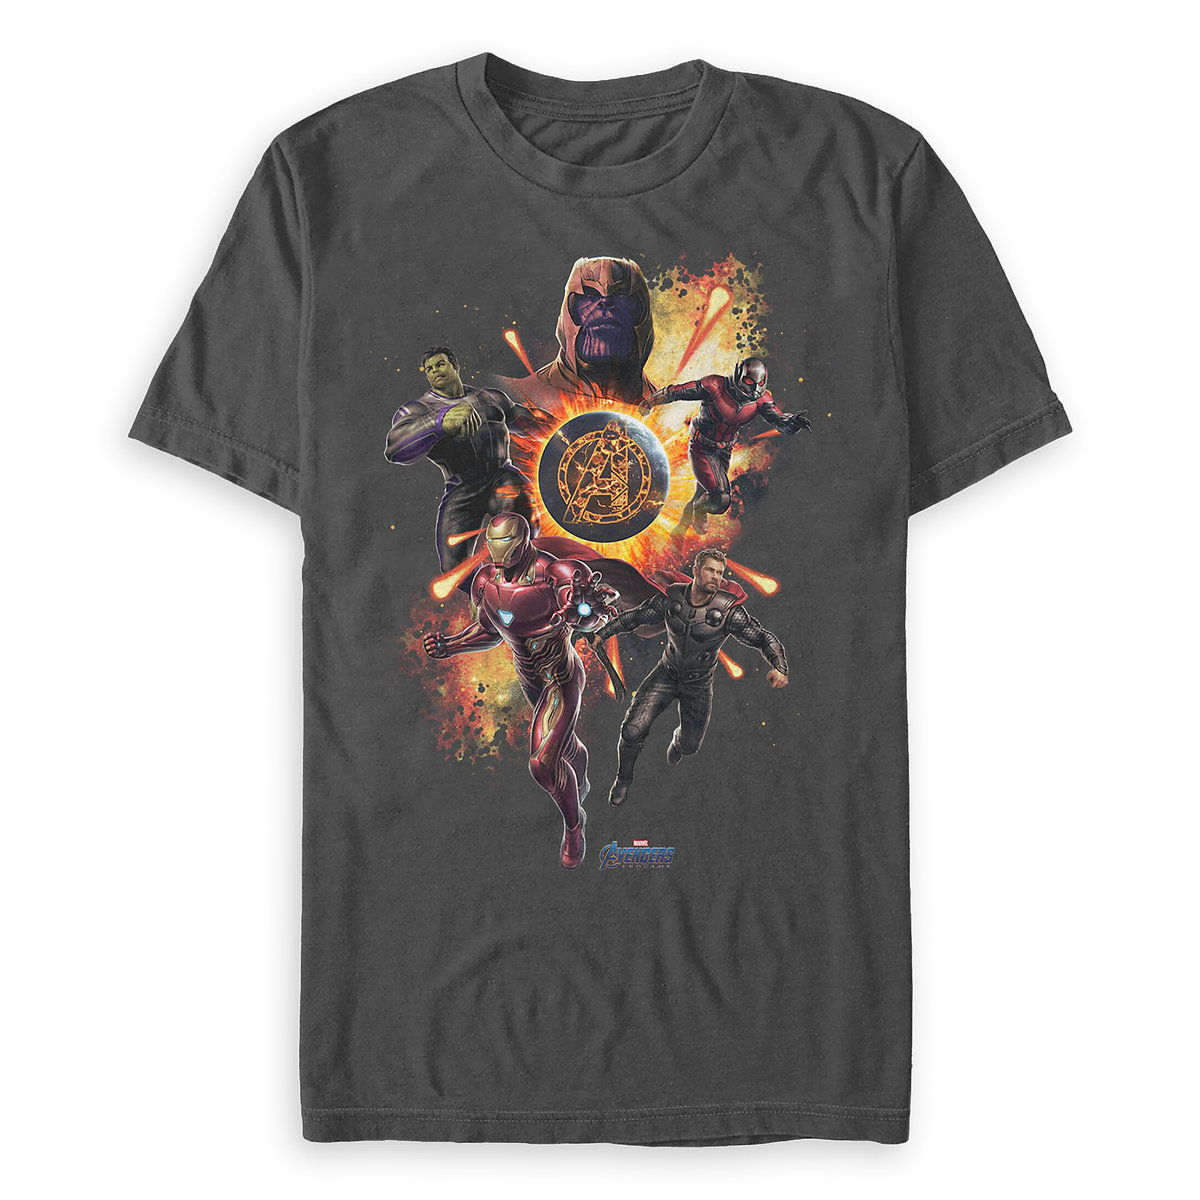 9318efbbdbc66 Product Image of Marvel s Avengers  Endgame T-Shirt for Adults   1